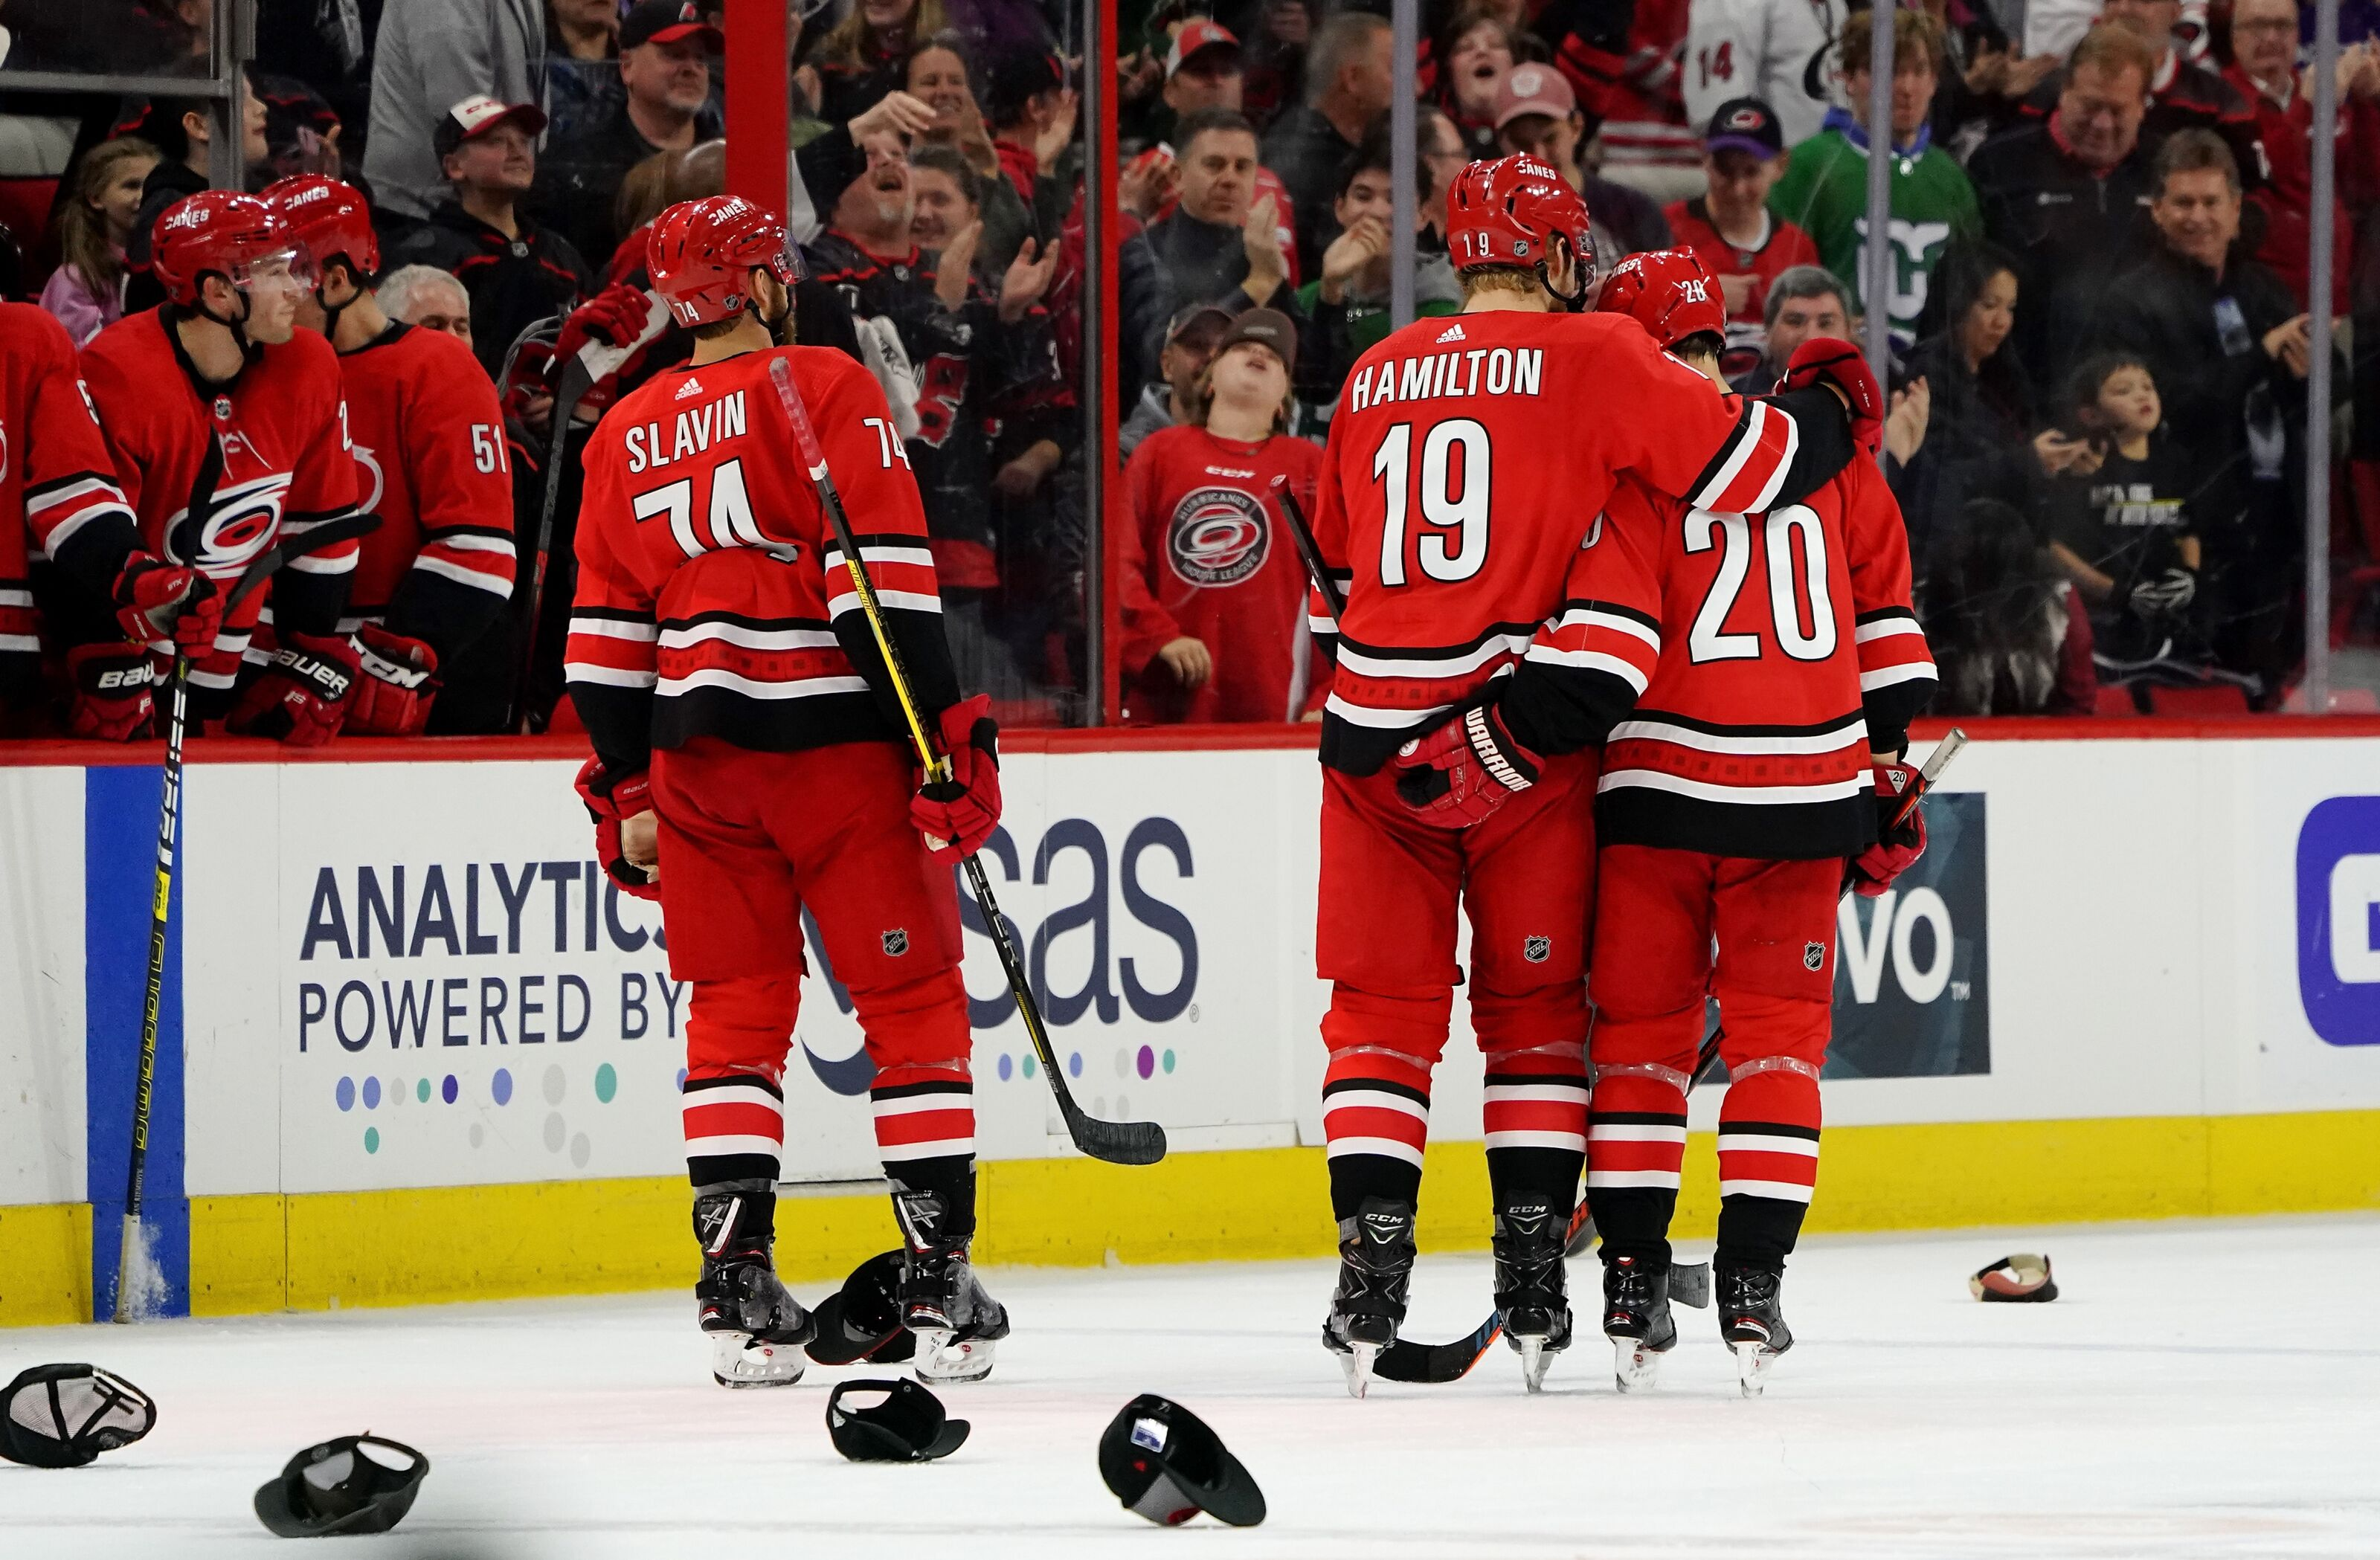 Carolina Hurricanes: Are they Stanley Cup contenders?